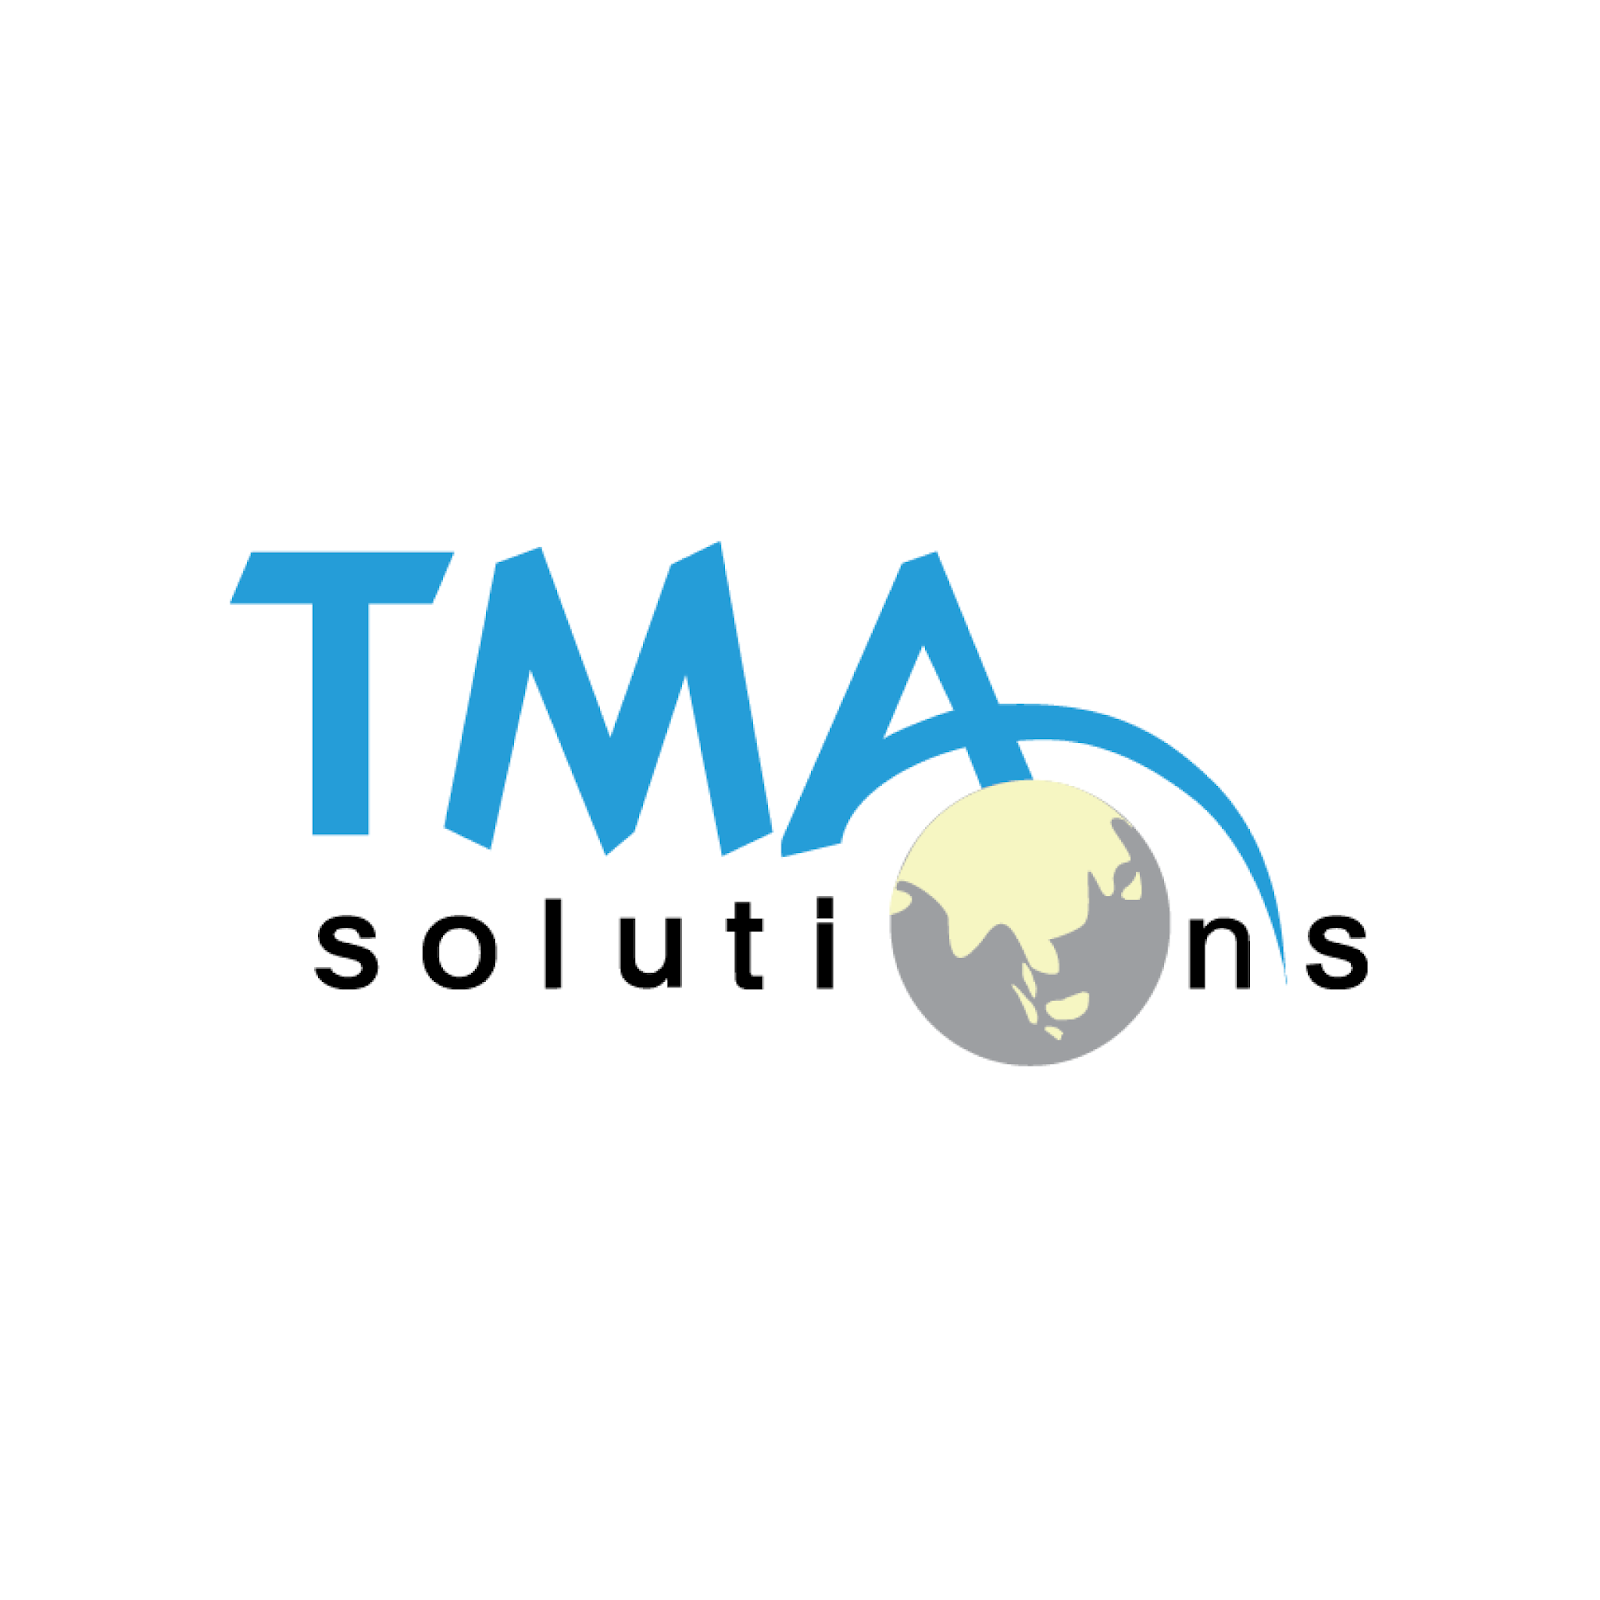 TMA Solutions is one of the best software companies in Vietnam